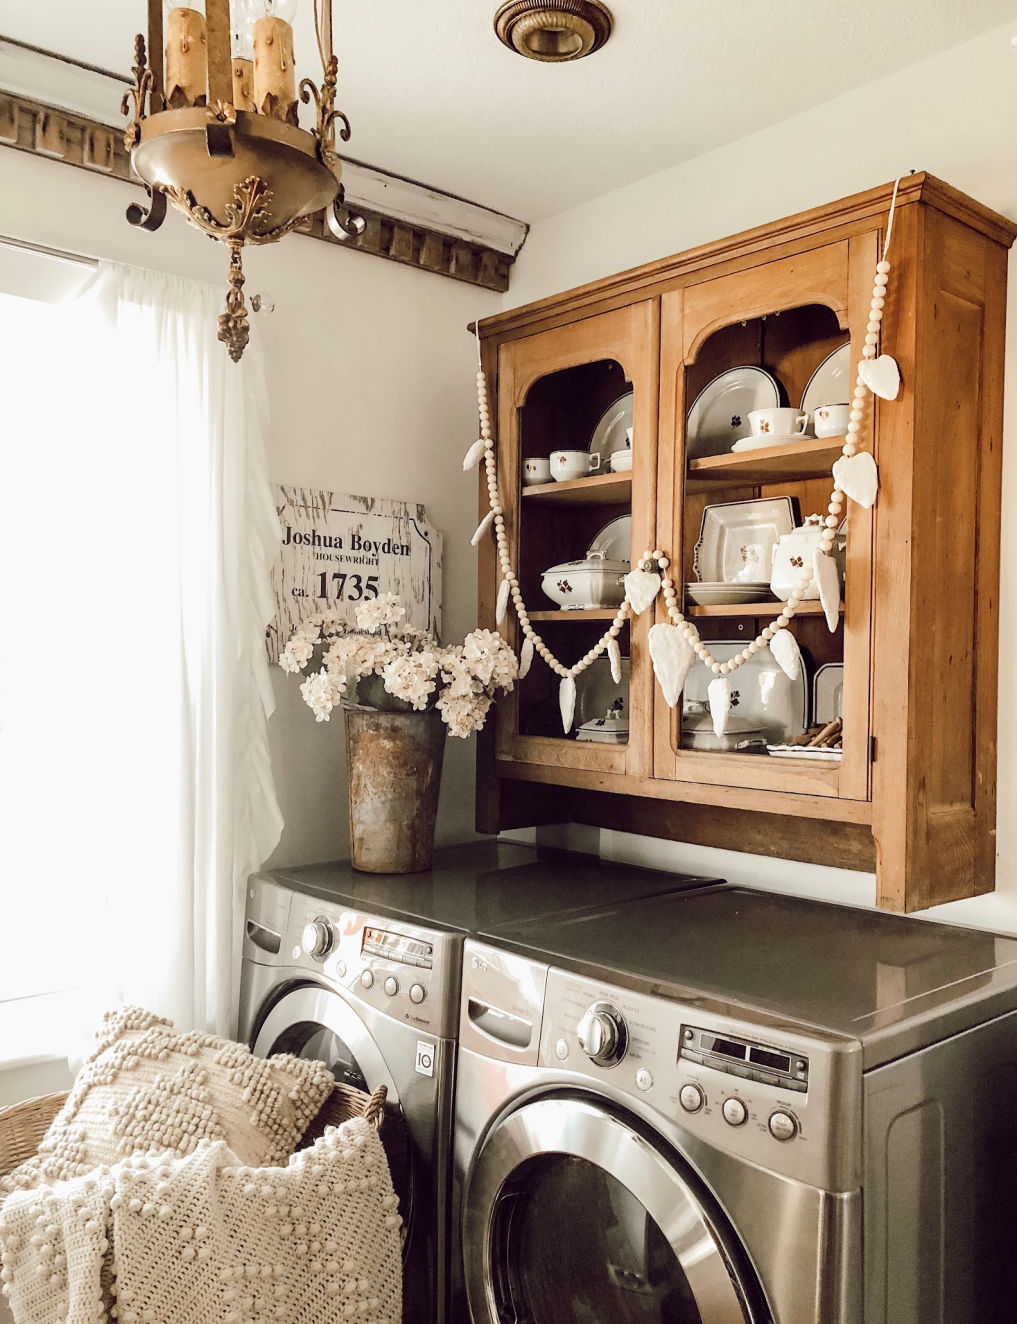 Laundry room with a vintage cabinet over the washer and dryer #farmhousedecor #vintagedecor #farmhouselaundryroom #laundryroom #neutraldecor #cottagestyle